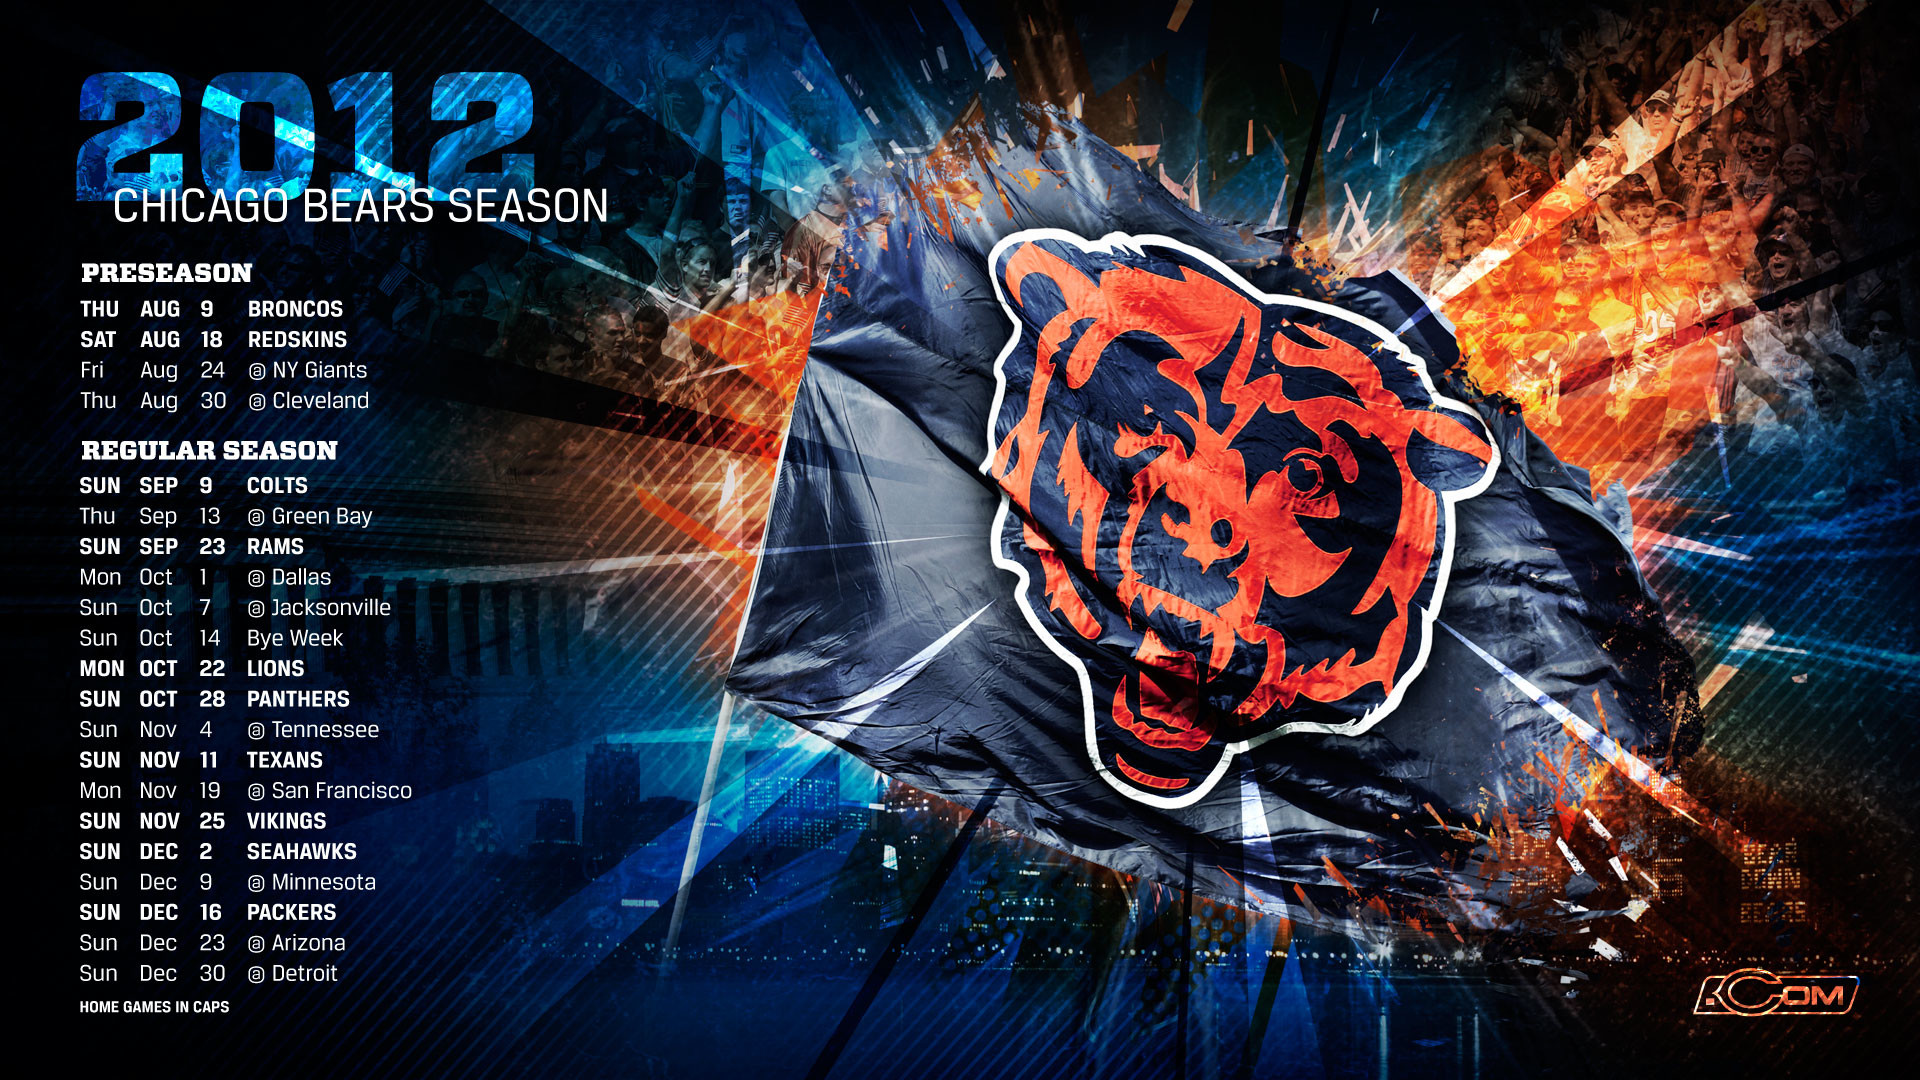 Chicago bears iphone wallpaper 77 images - Chicago bears phone wallpaper ...